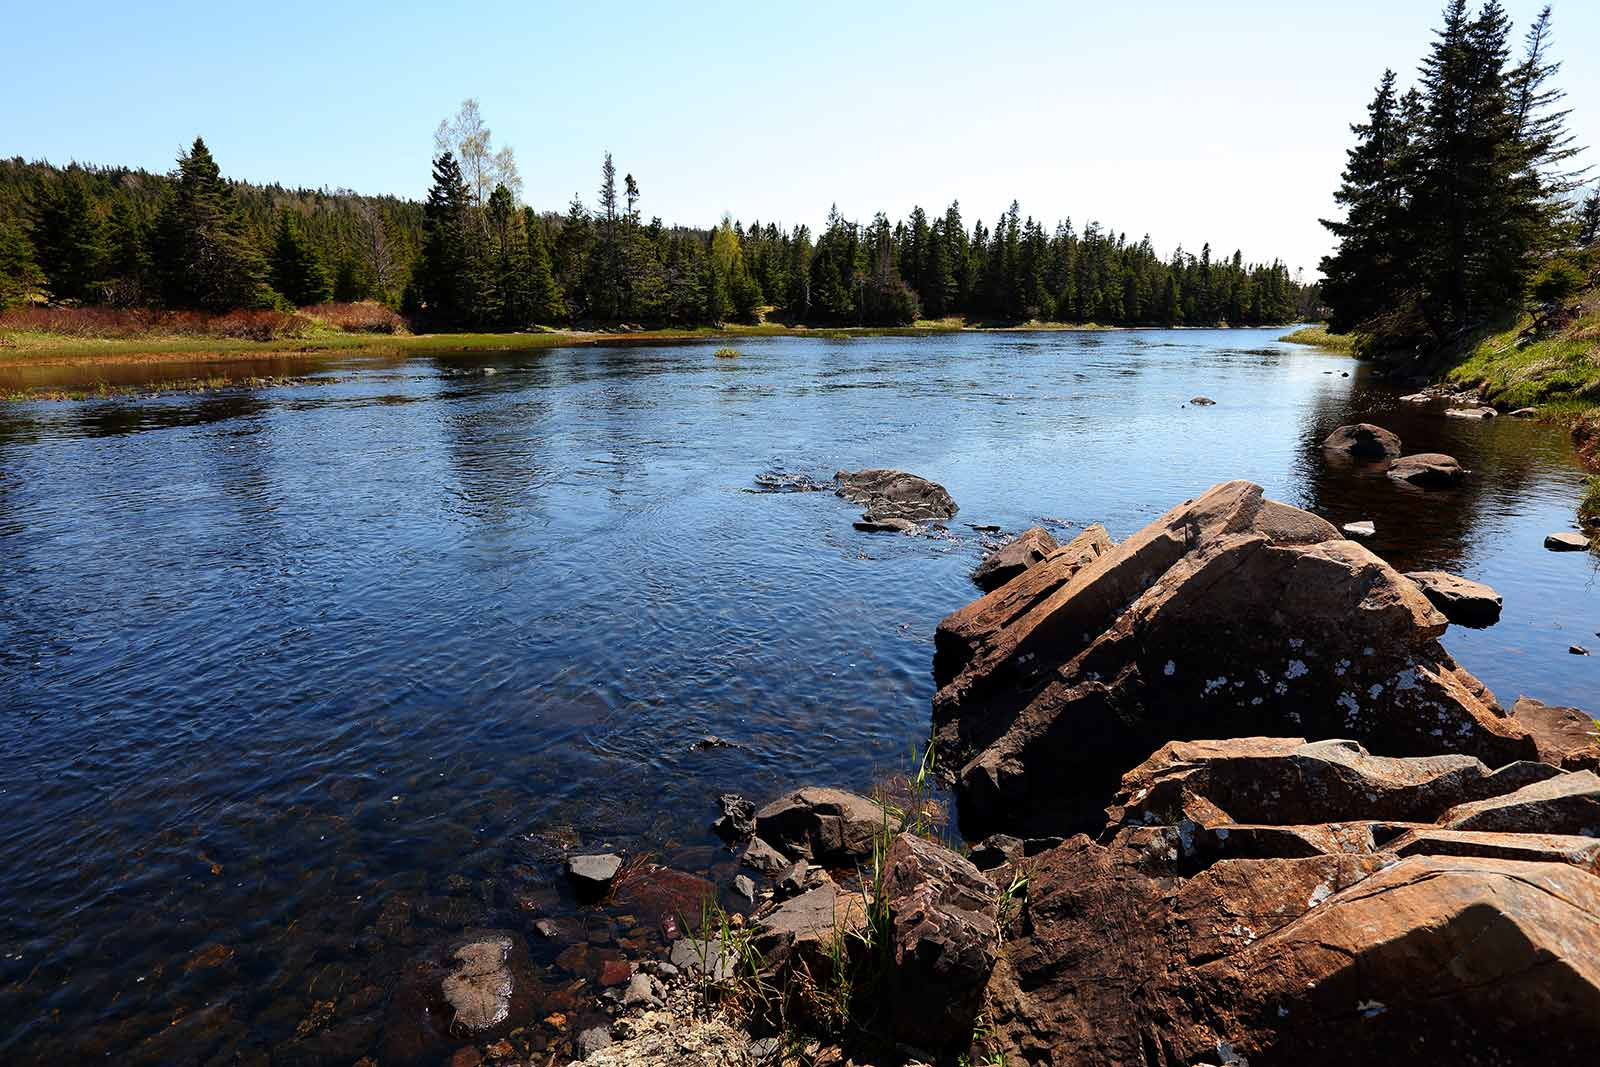 Boreal Forest - Salmonier Line, NL (Photo by Mike Dembeck)